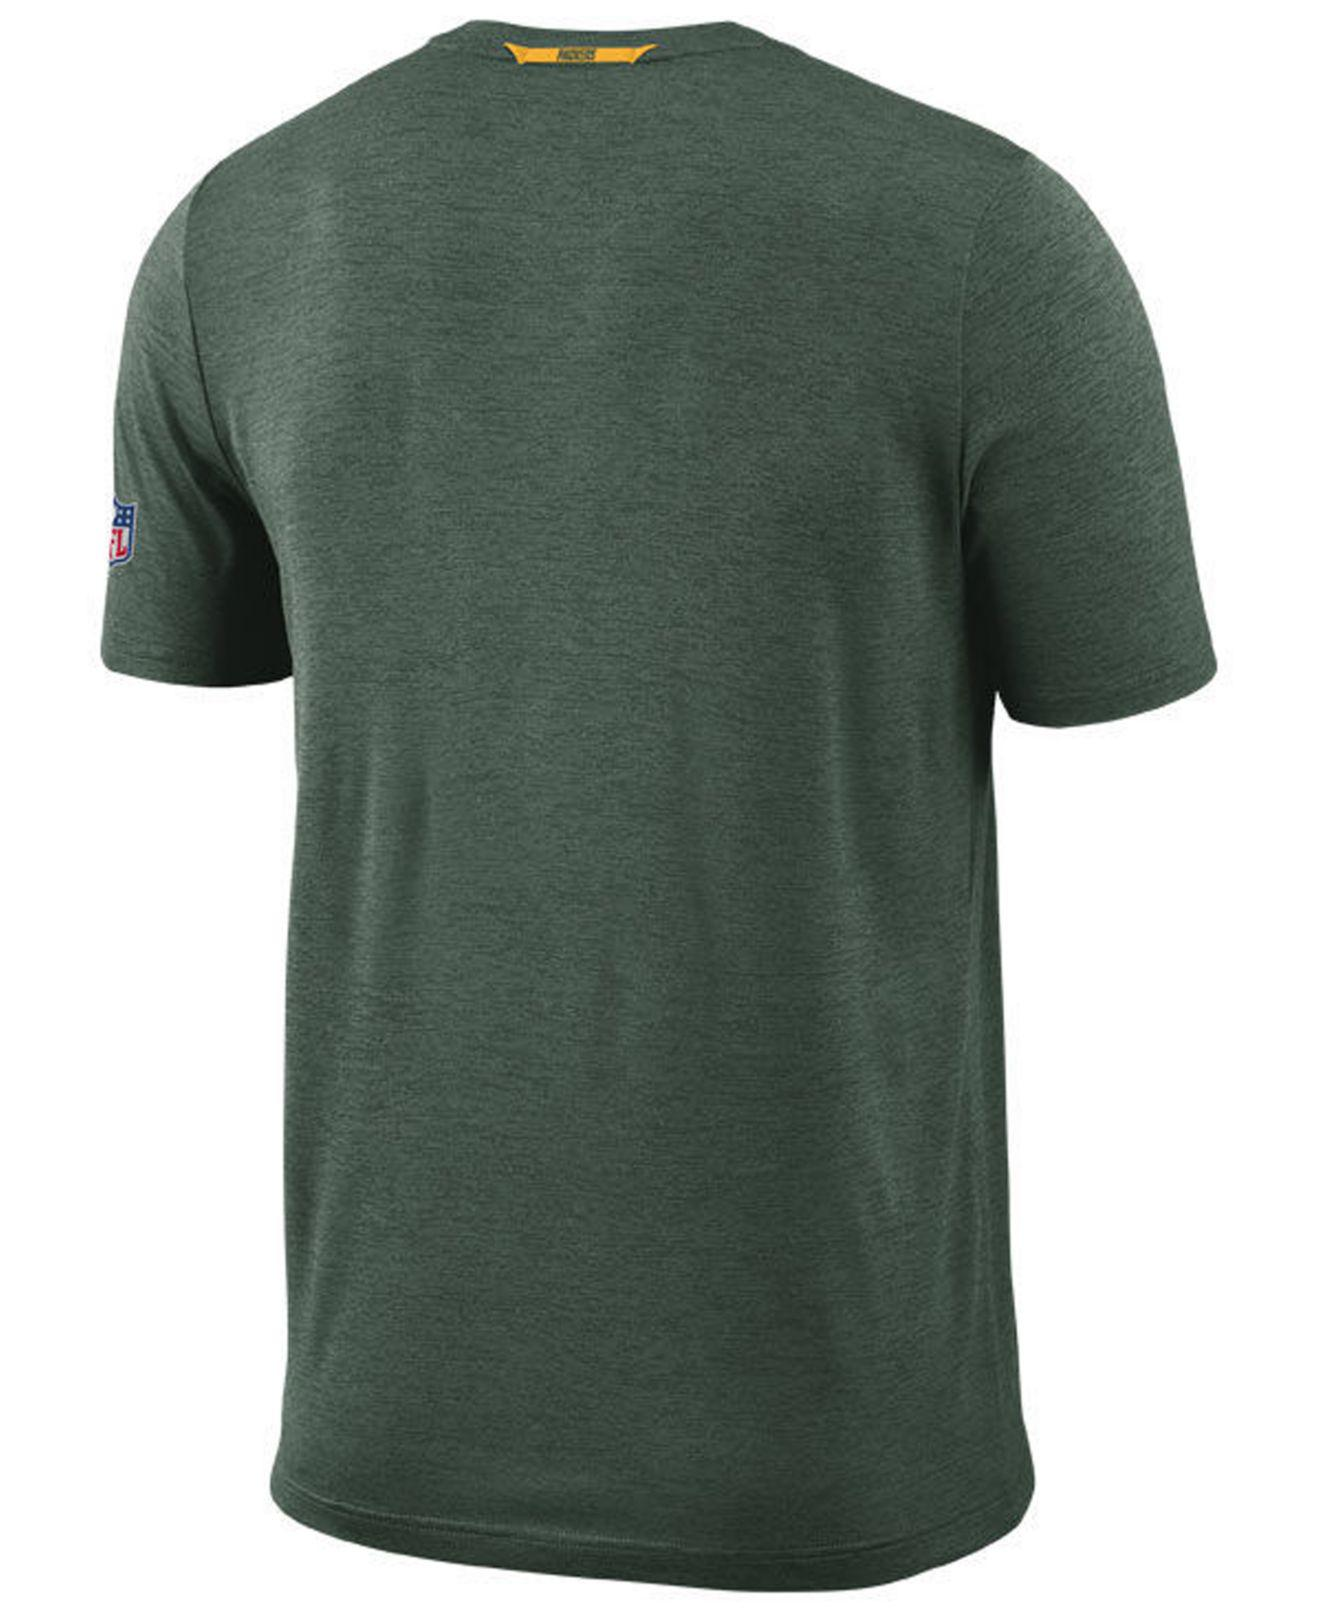 Lyst - Nike Green Bay Packers Coaches T-shirt in Green for Men 7ad545af6